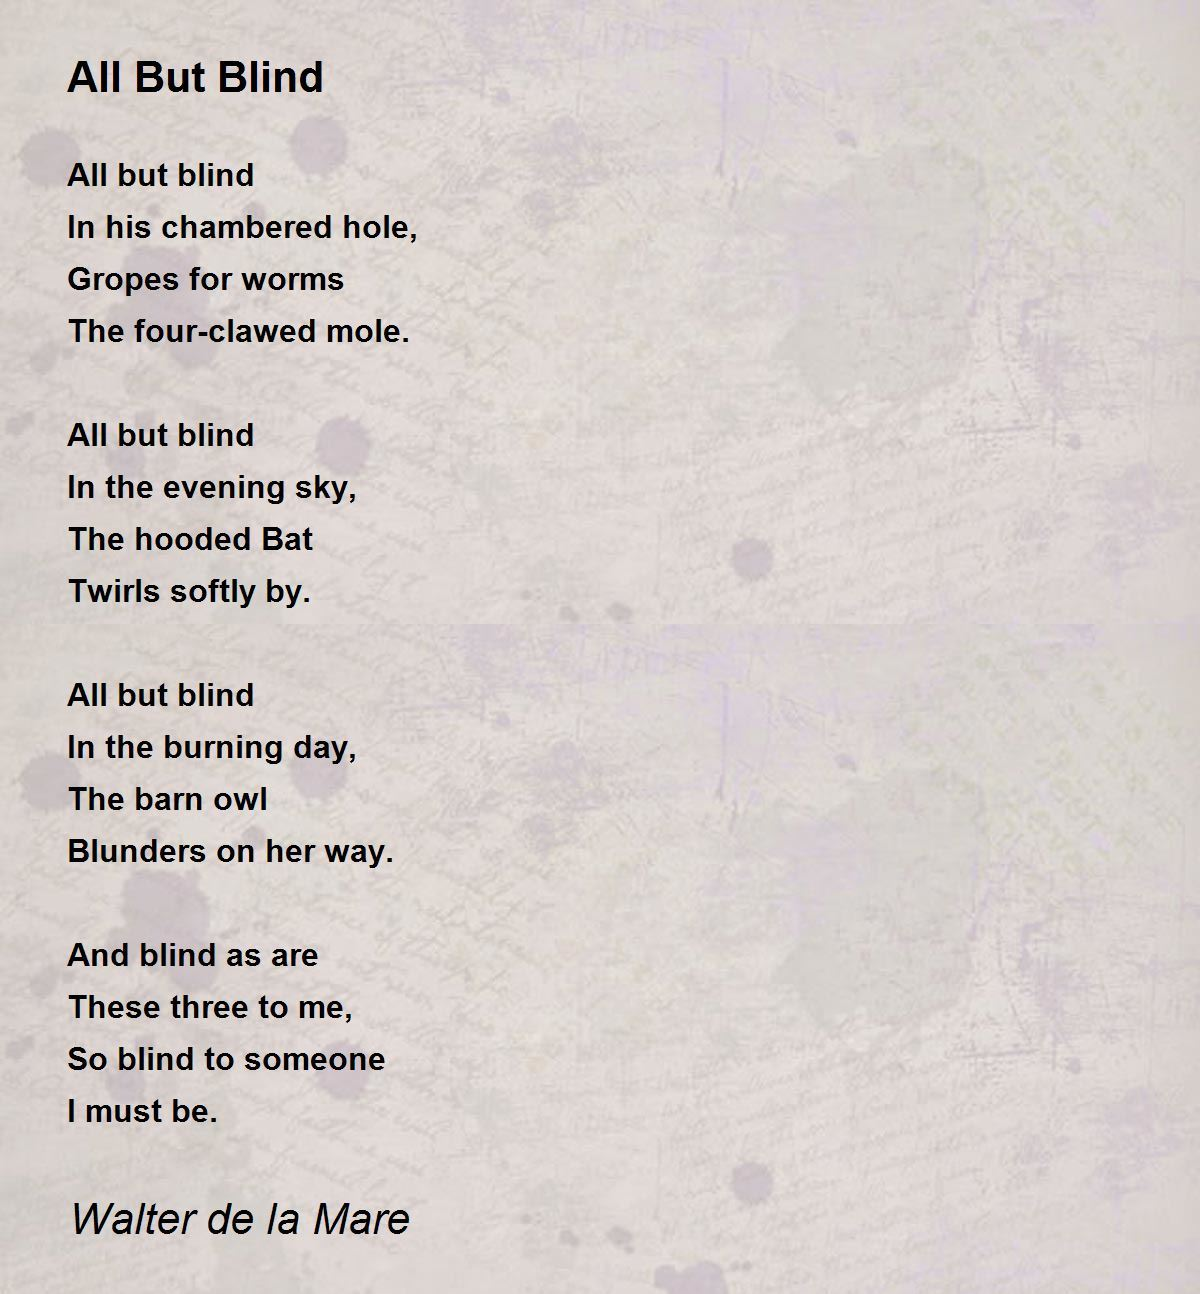 All But Blind In His Chambered Hole By Walter De La Mare